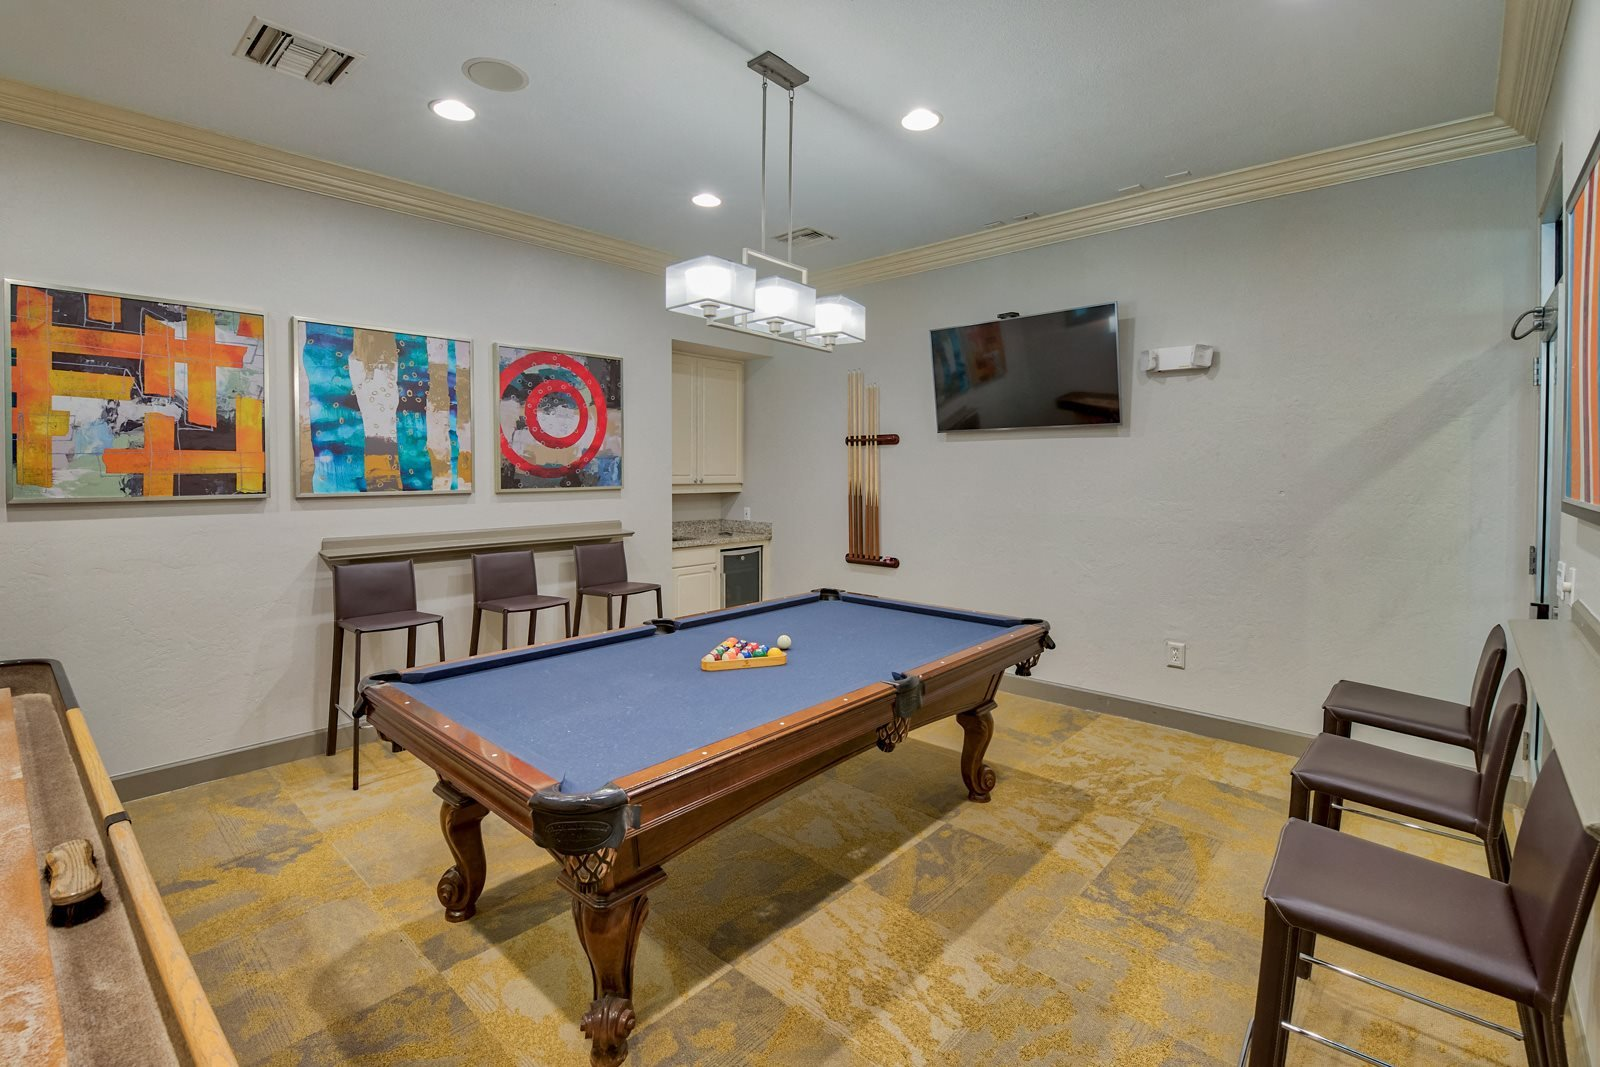 Billiards and Gaming Room at Windsor at Aviara, 6610 Ambrosia Lane, CA